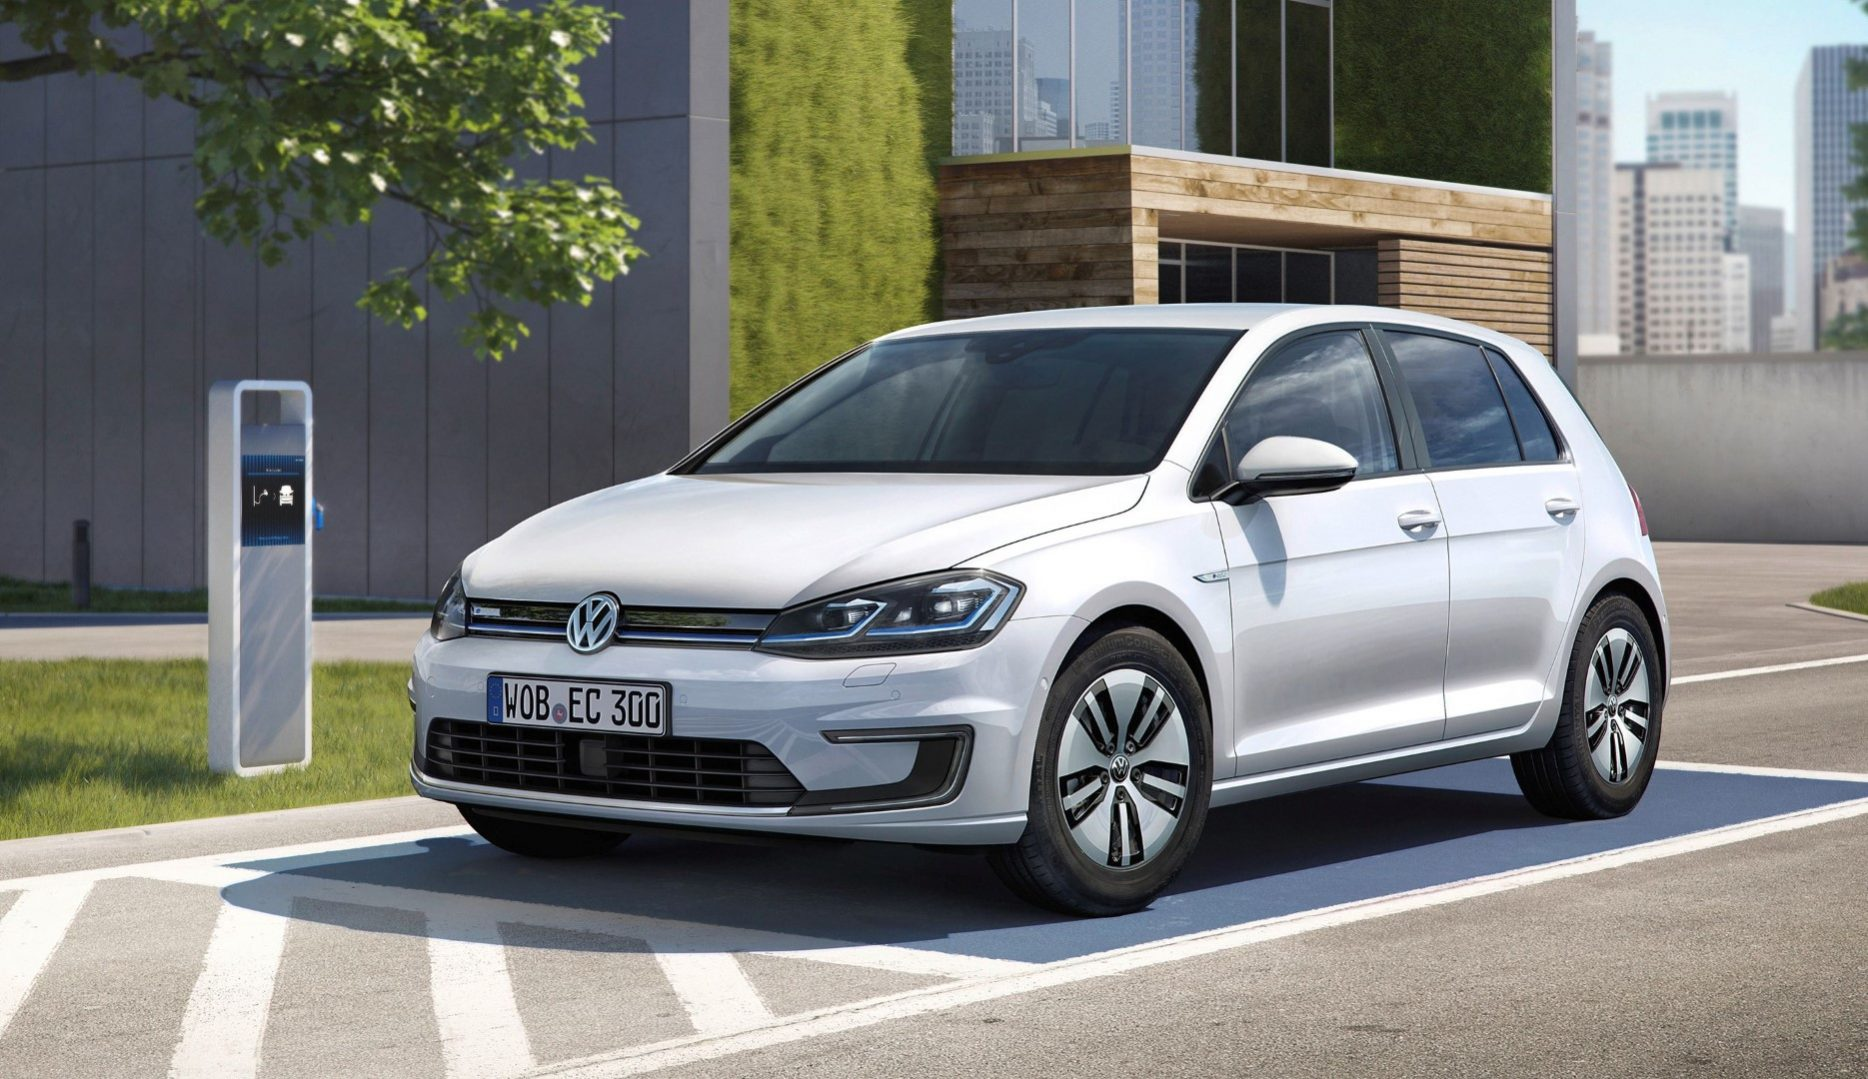 Volkswagen e-Golf Voltic Electric